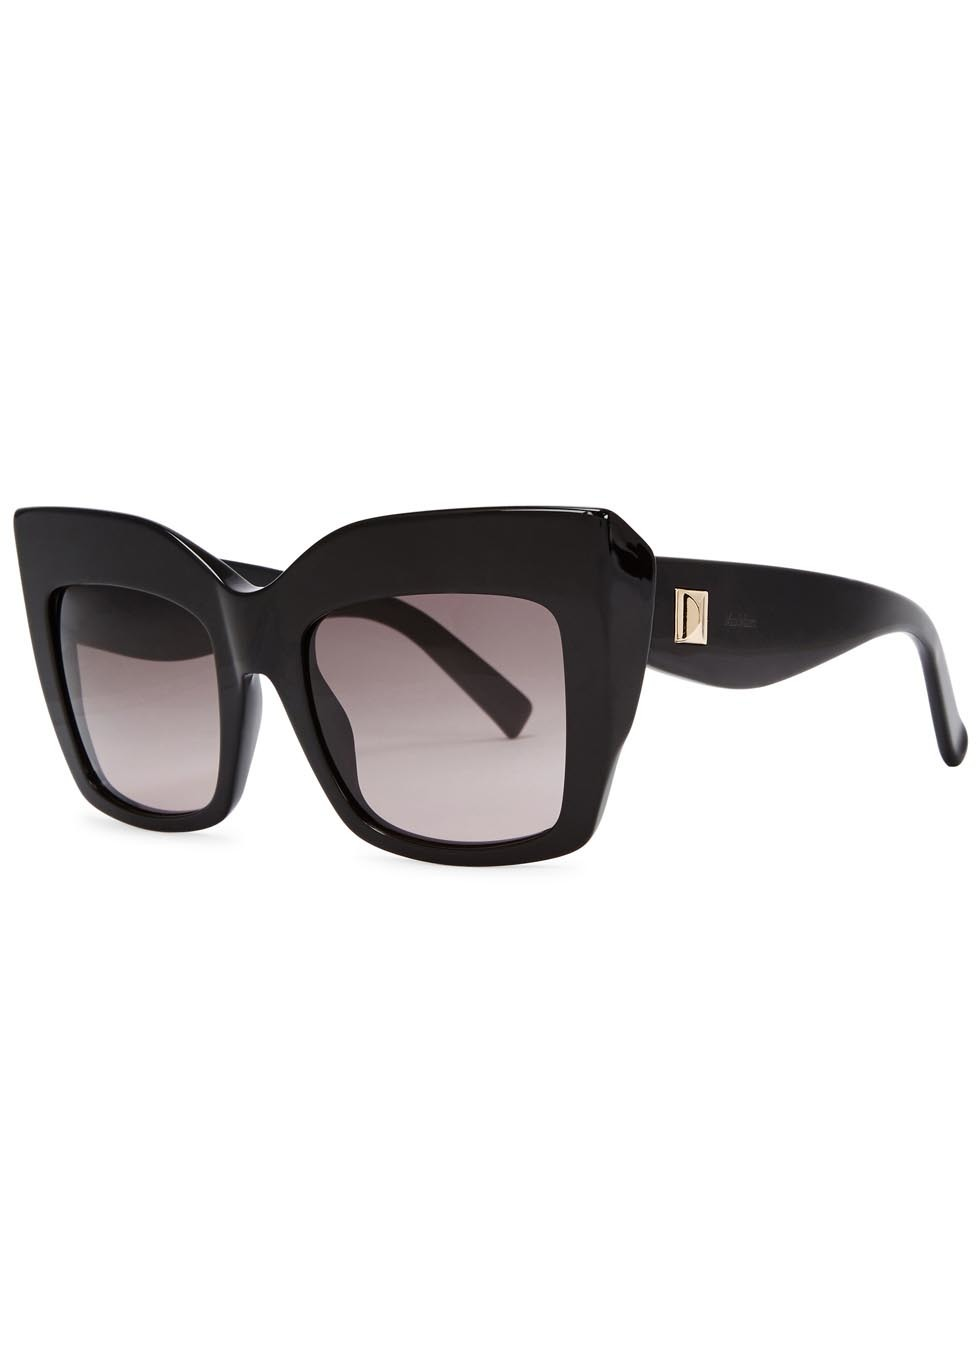 Black Square Frame Sunglasses - predominant colour: black; occasions: casual, holiday; style: square; size: large; material: plastic/rubber; pattern: plain; finish: plain; season: a/w 2015; wardrobe: basic